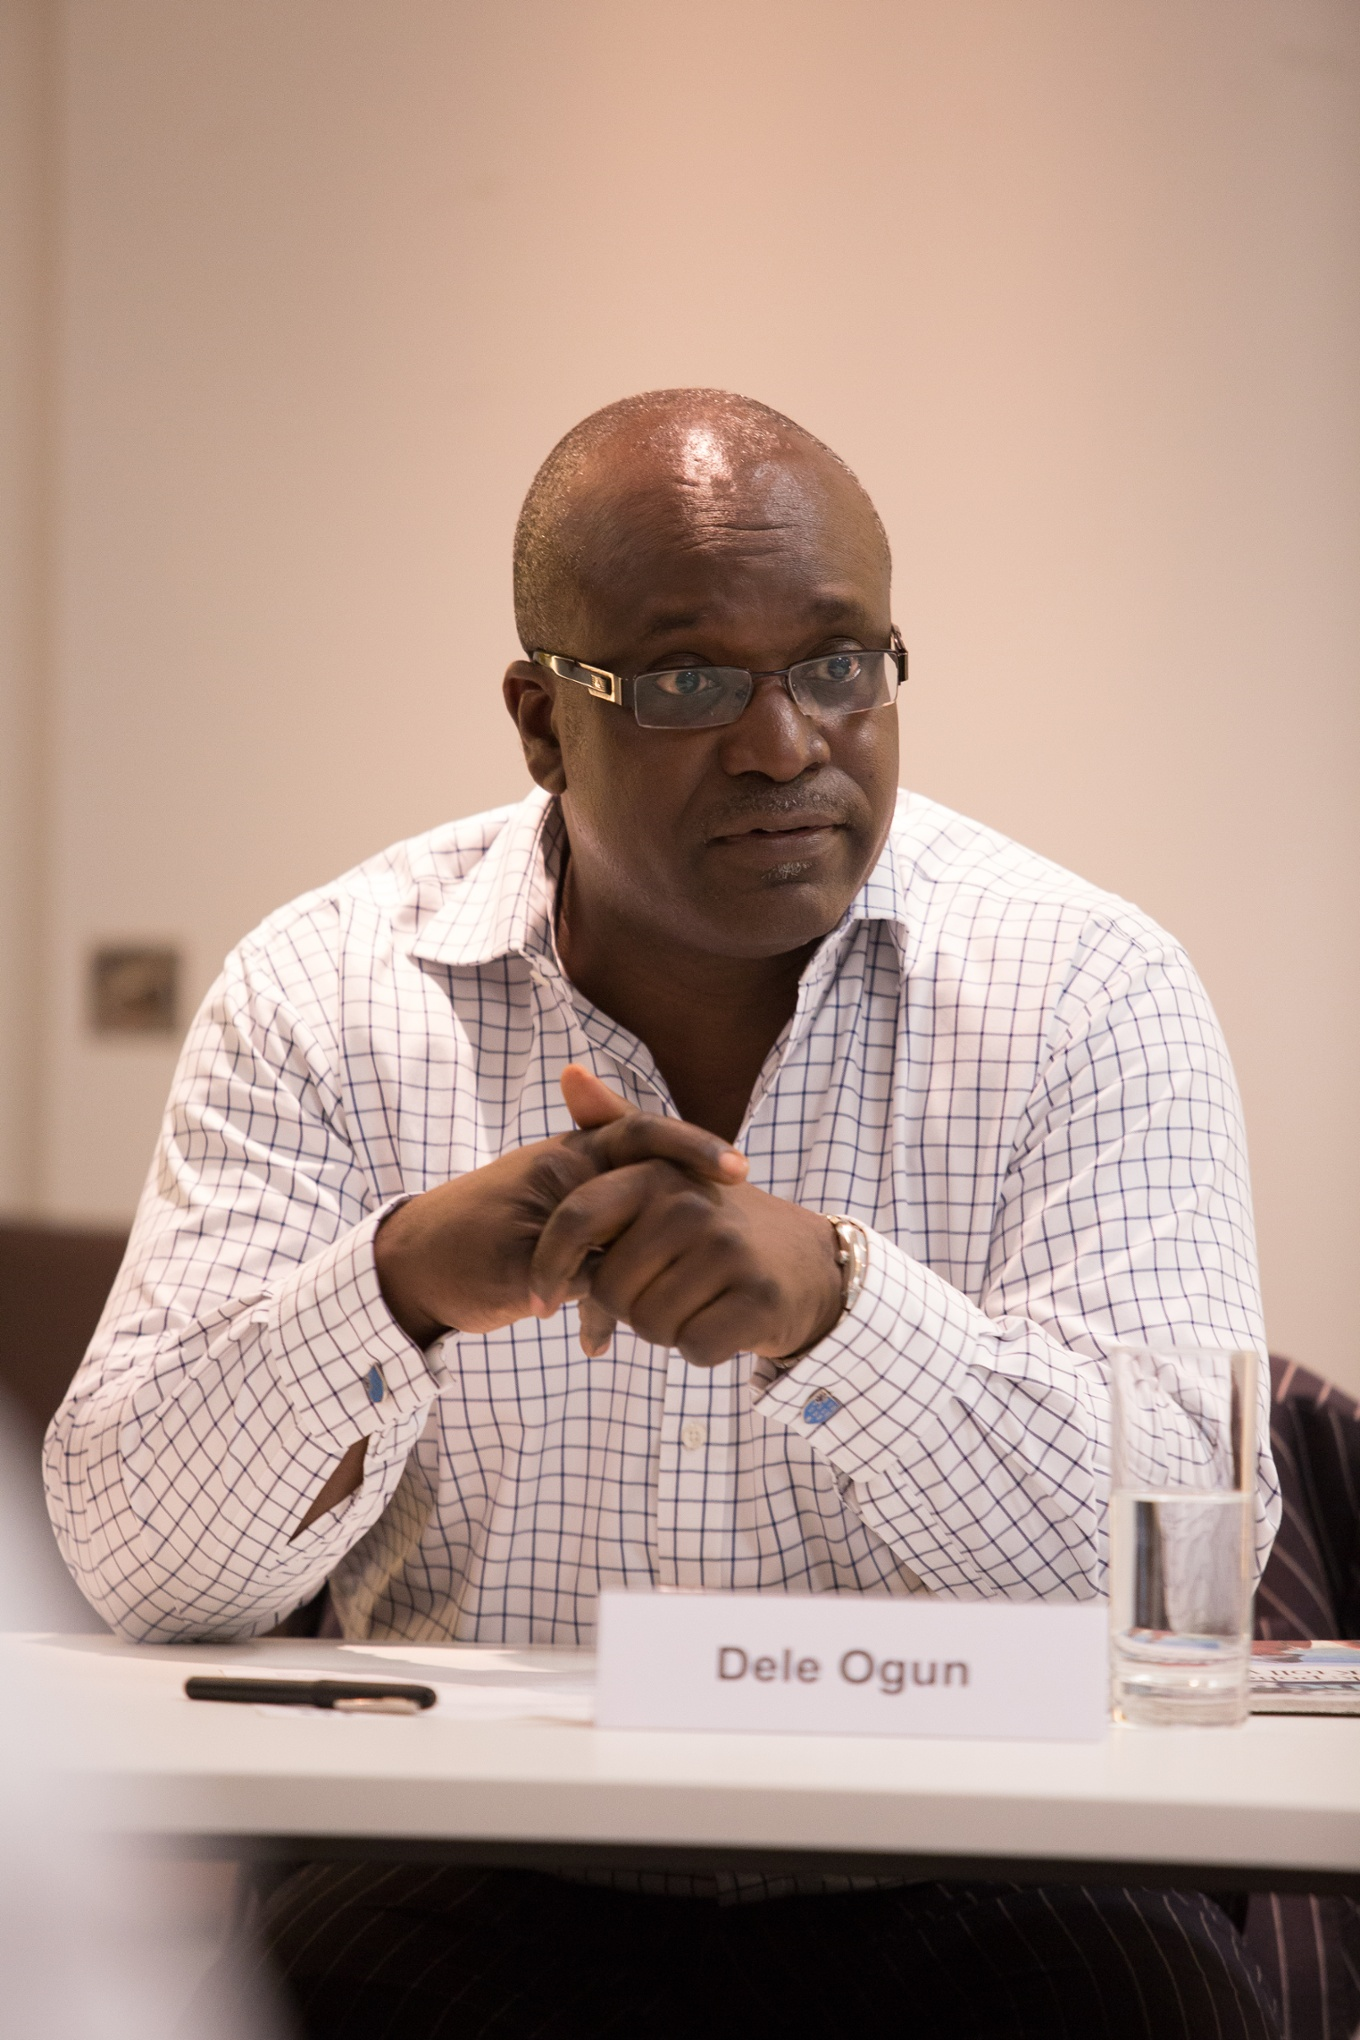 Dele Ogun - Guardian roundtable, Equality in Law, 29/06/2015.